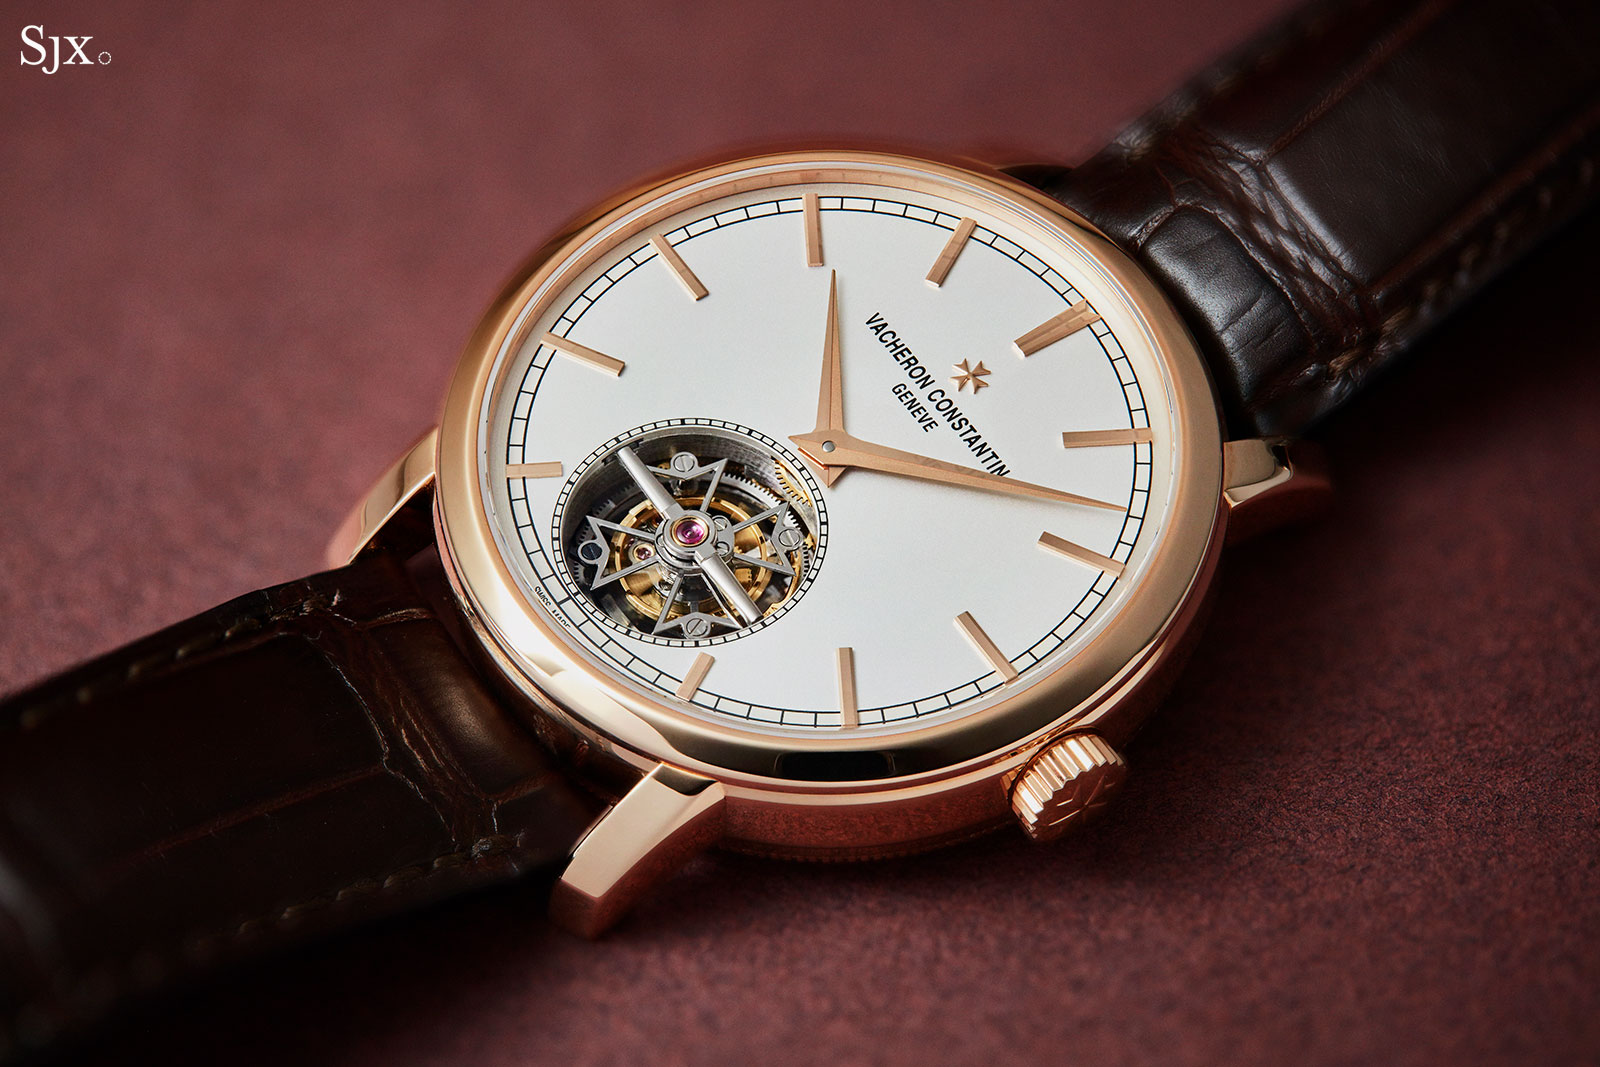 Vacheron Constantin Traditionnelle tourbillon automatic 4